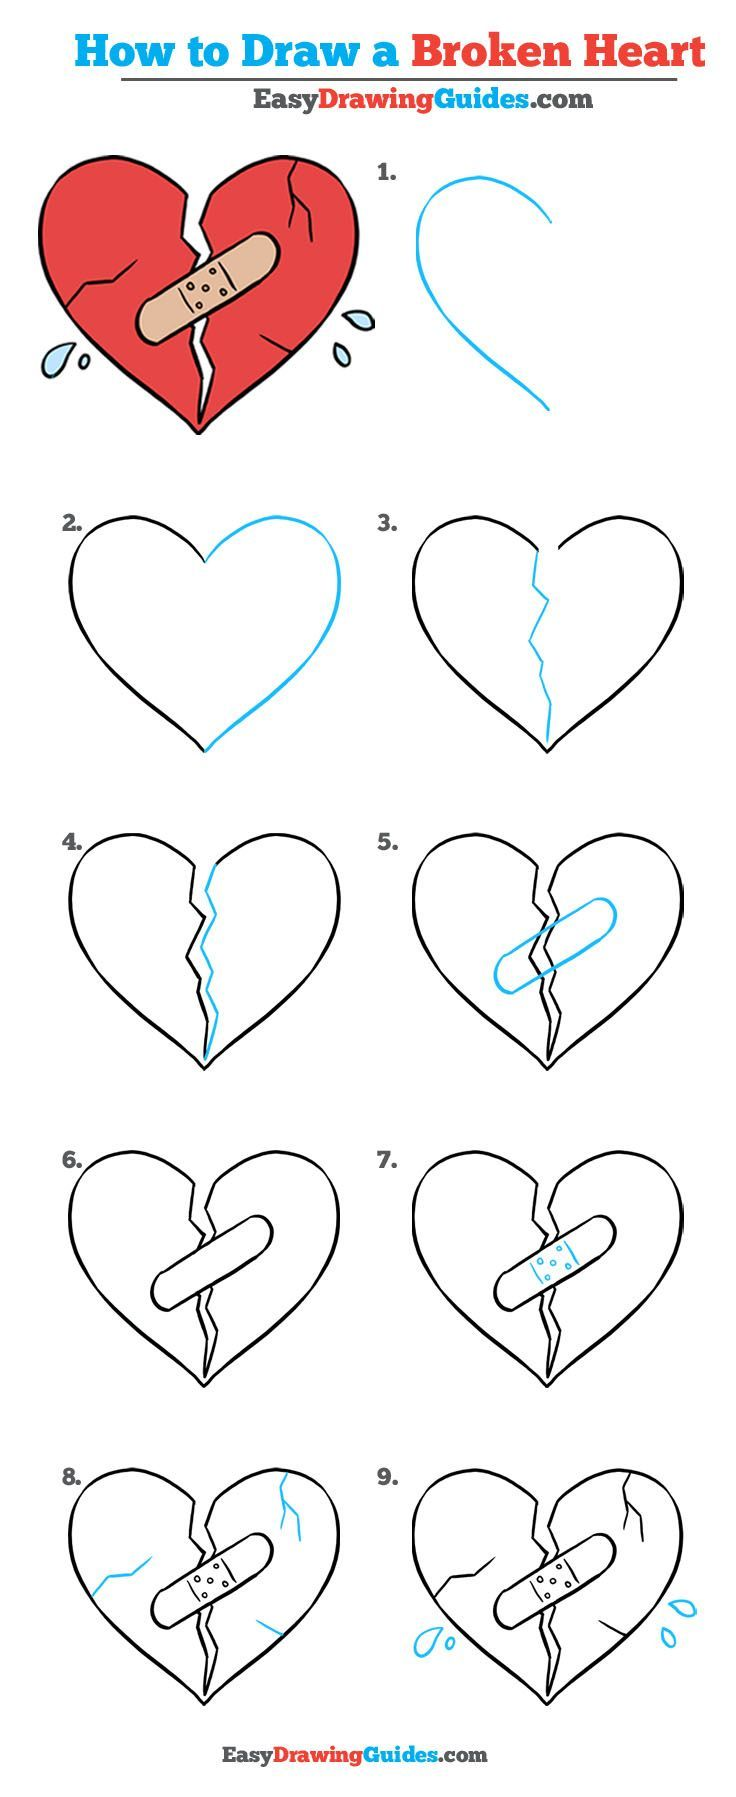 Learn How to Draw a Broken Heart: Easy Step-by-Step ...